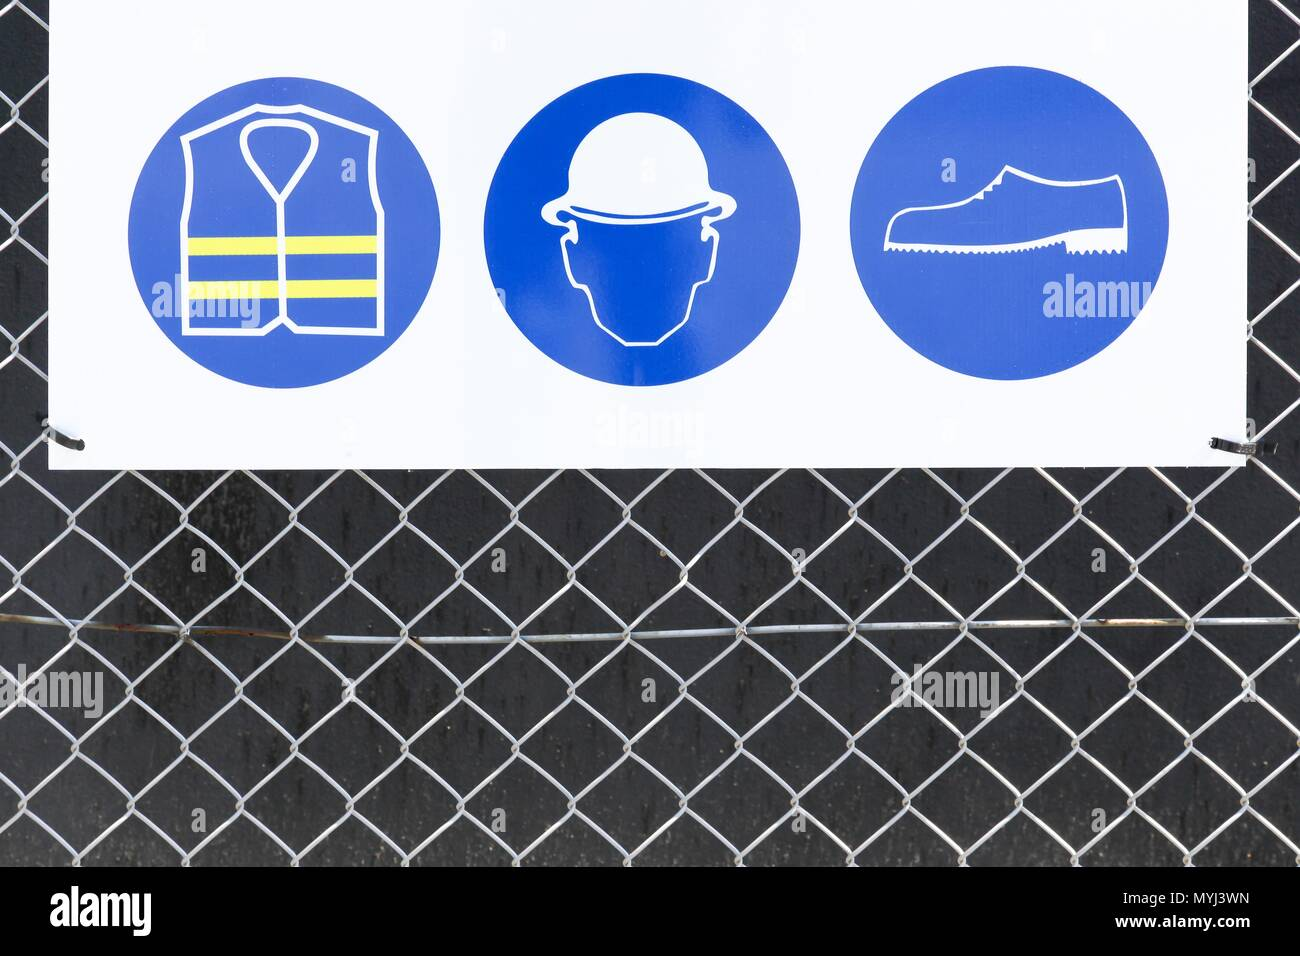 Safety signs on an industrial site - Stock Image